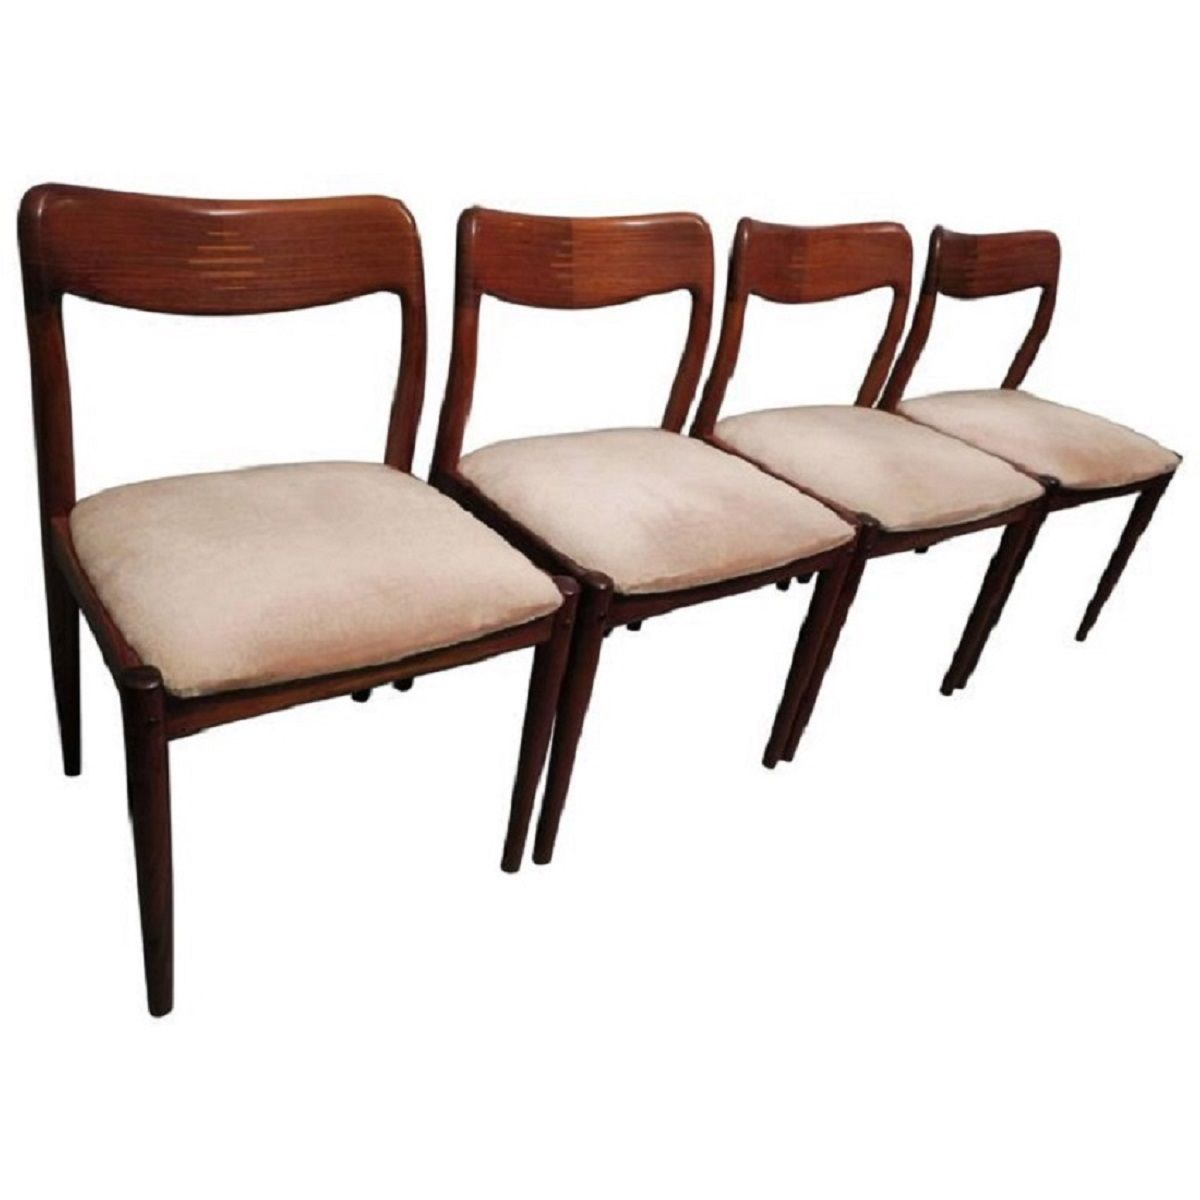 Danish Rosewood Inlaid Dining Chairs 1960s Set Of 4 For Sale At Pamono